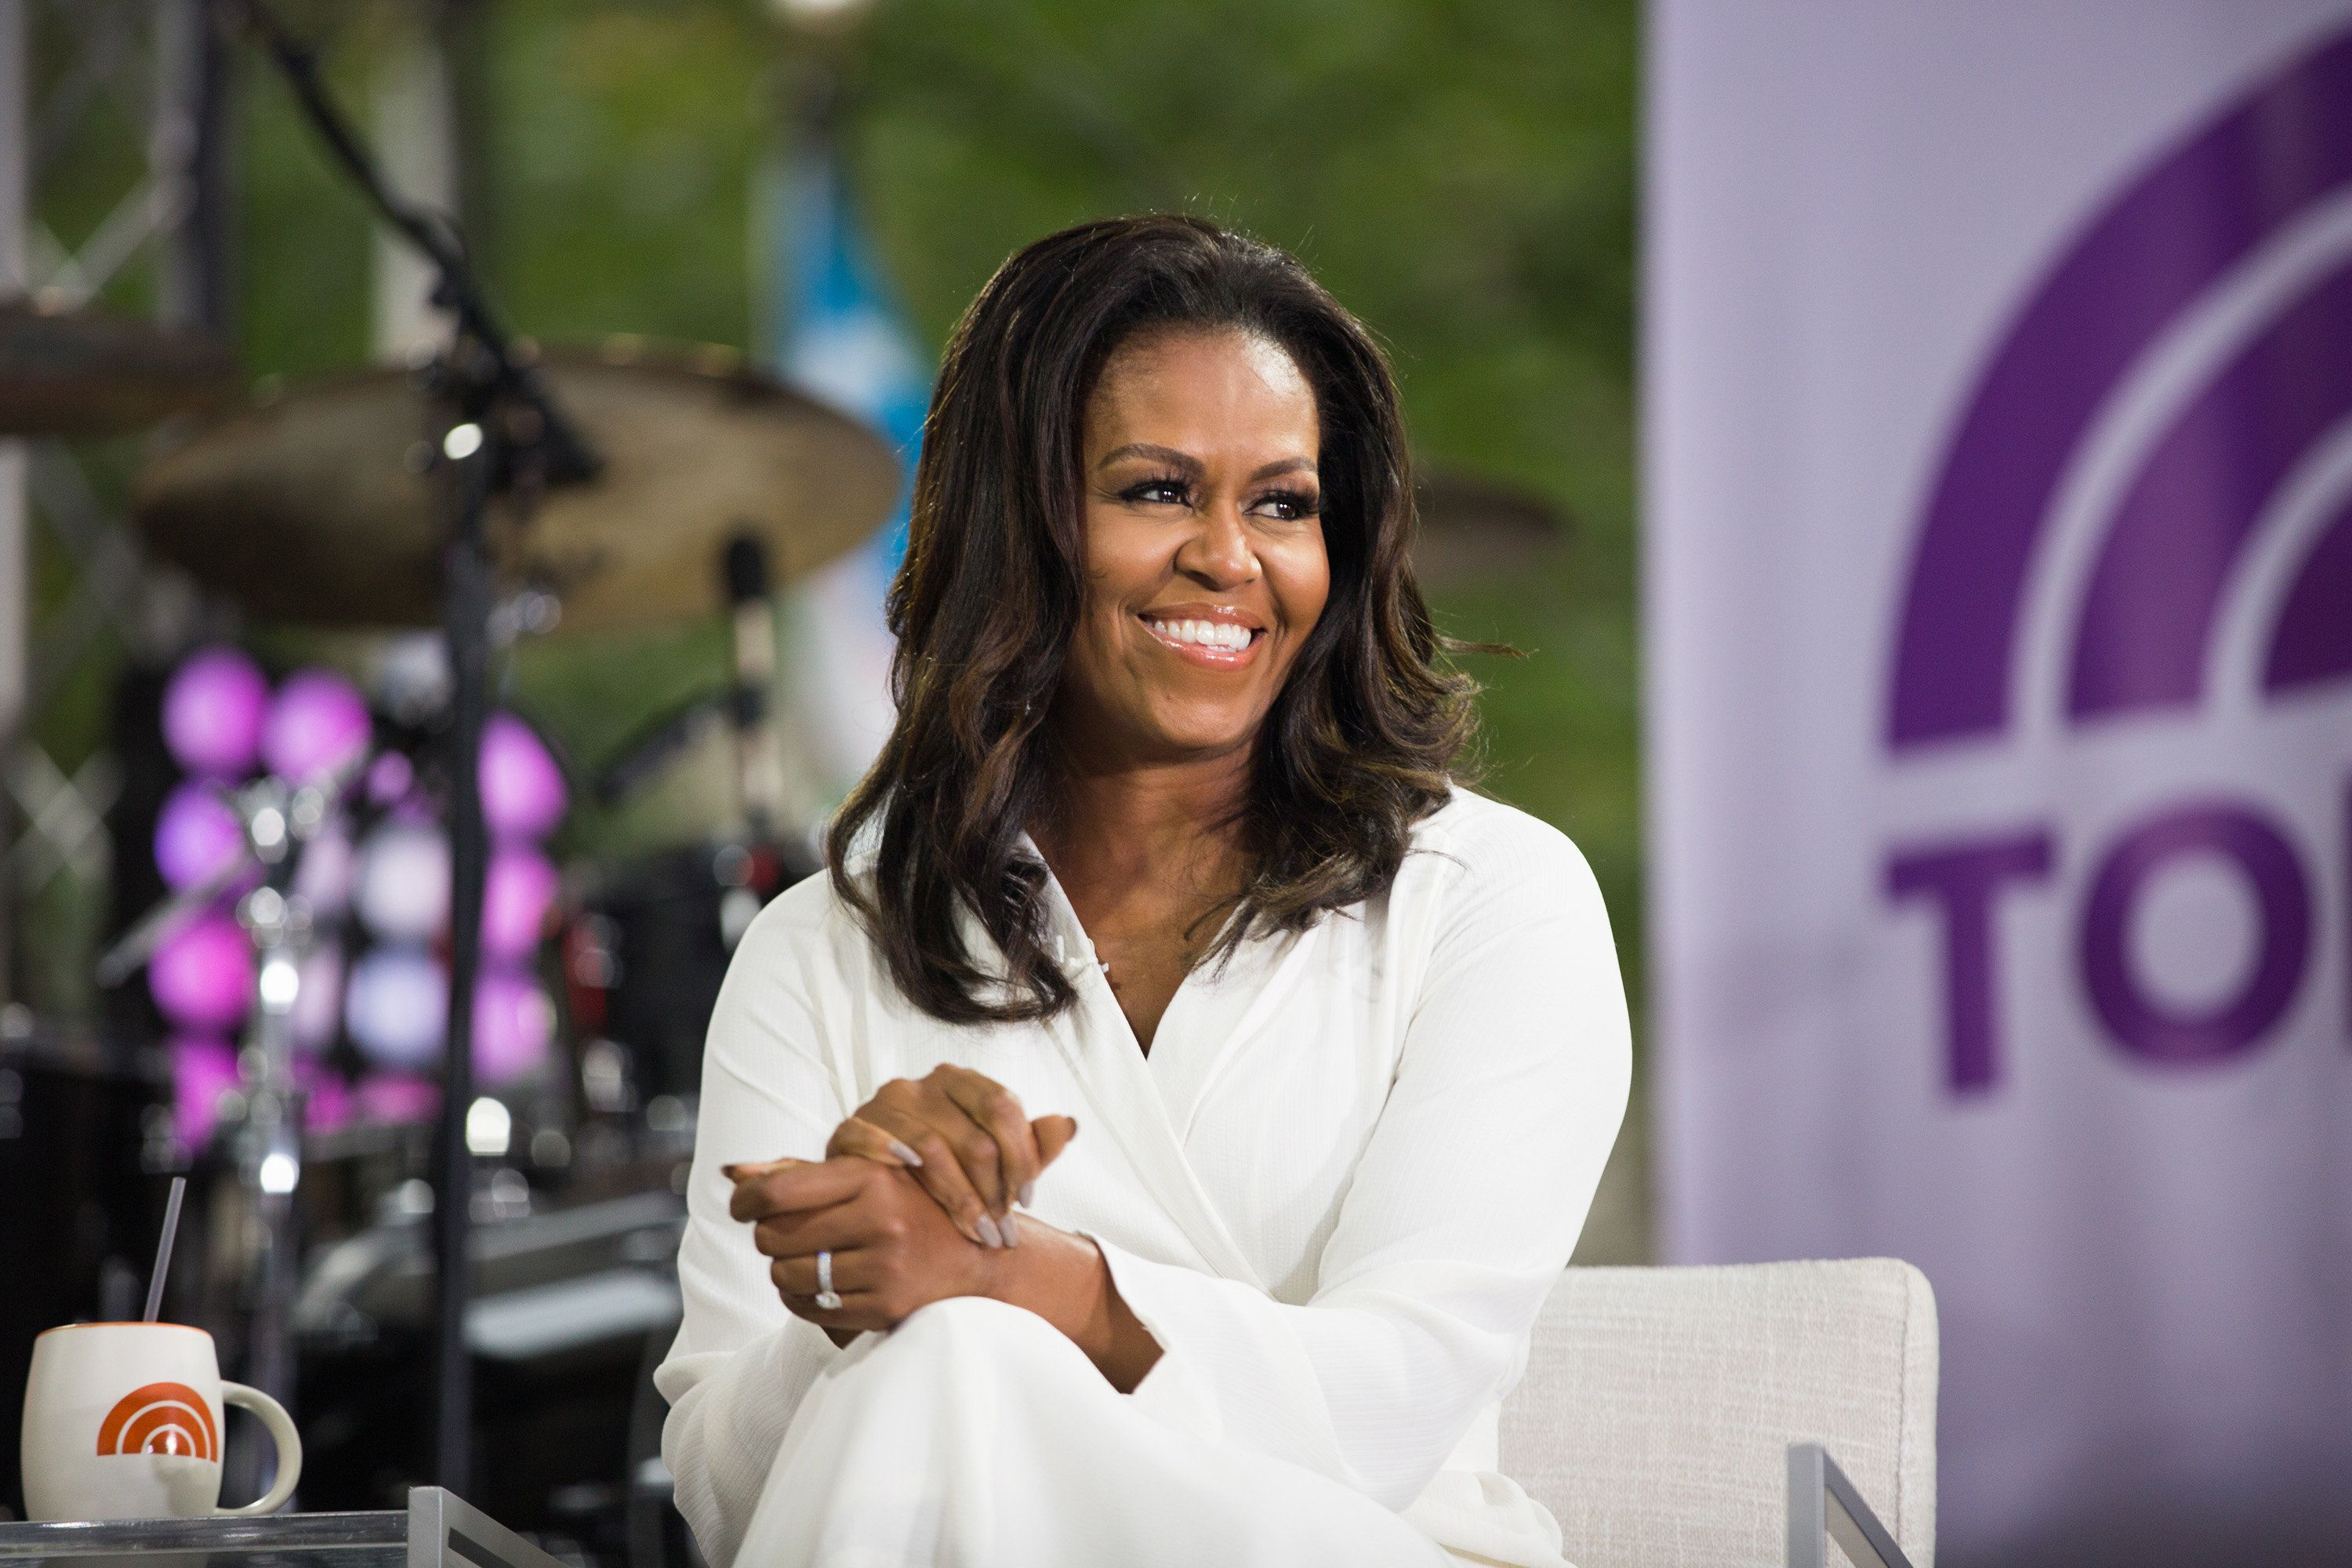 Michelle Obama Doesn't Think Democrats Should Stop Being Civil